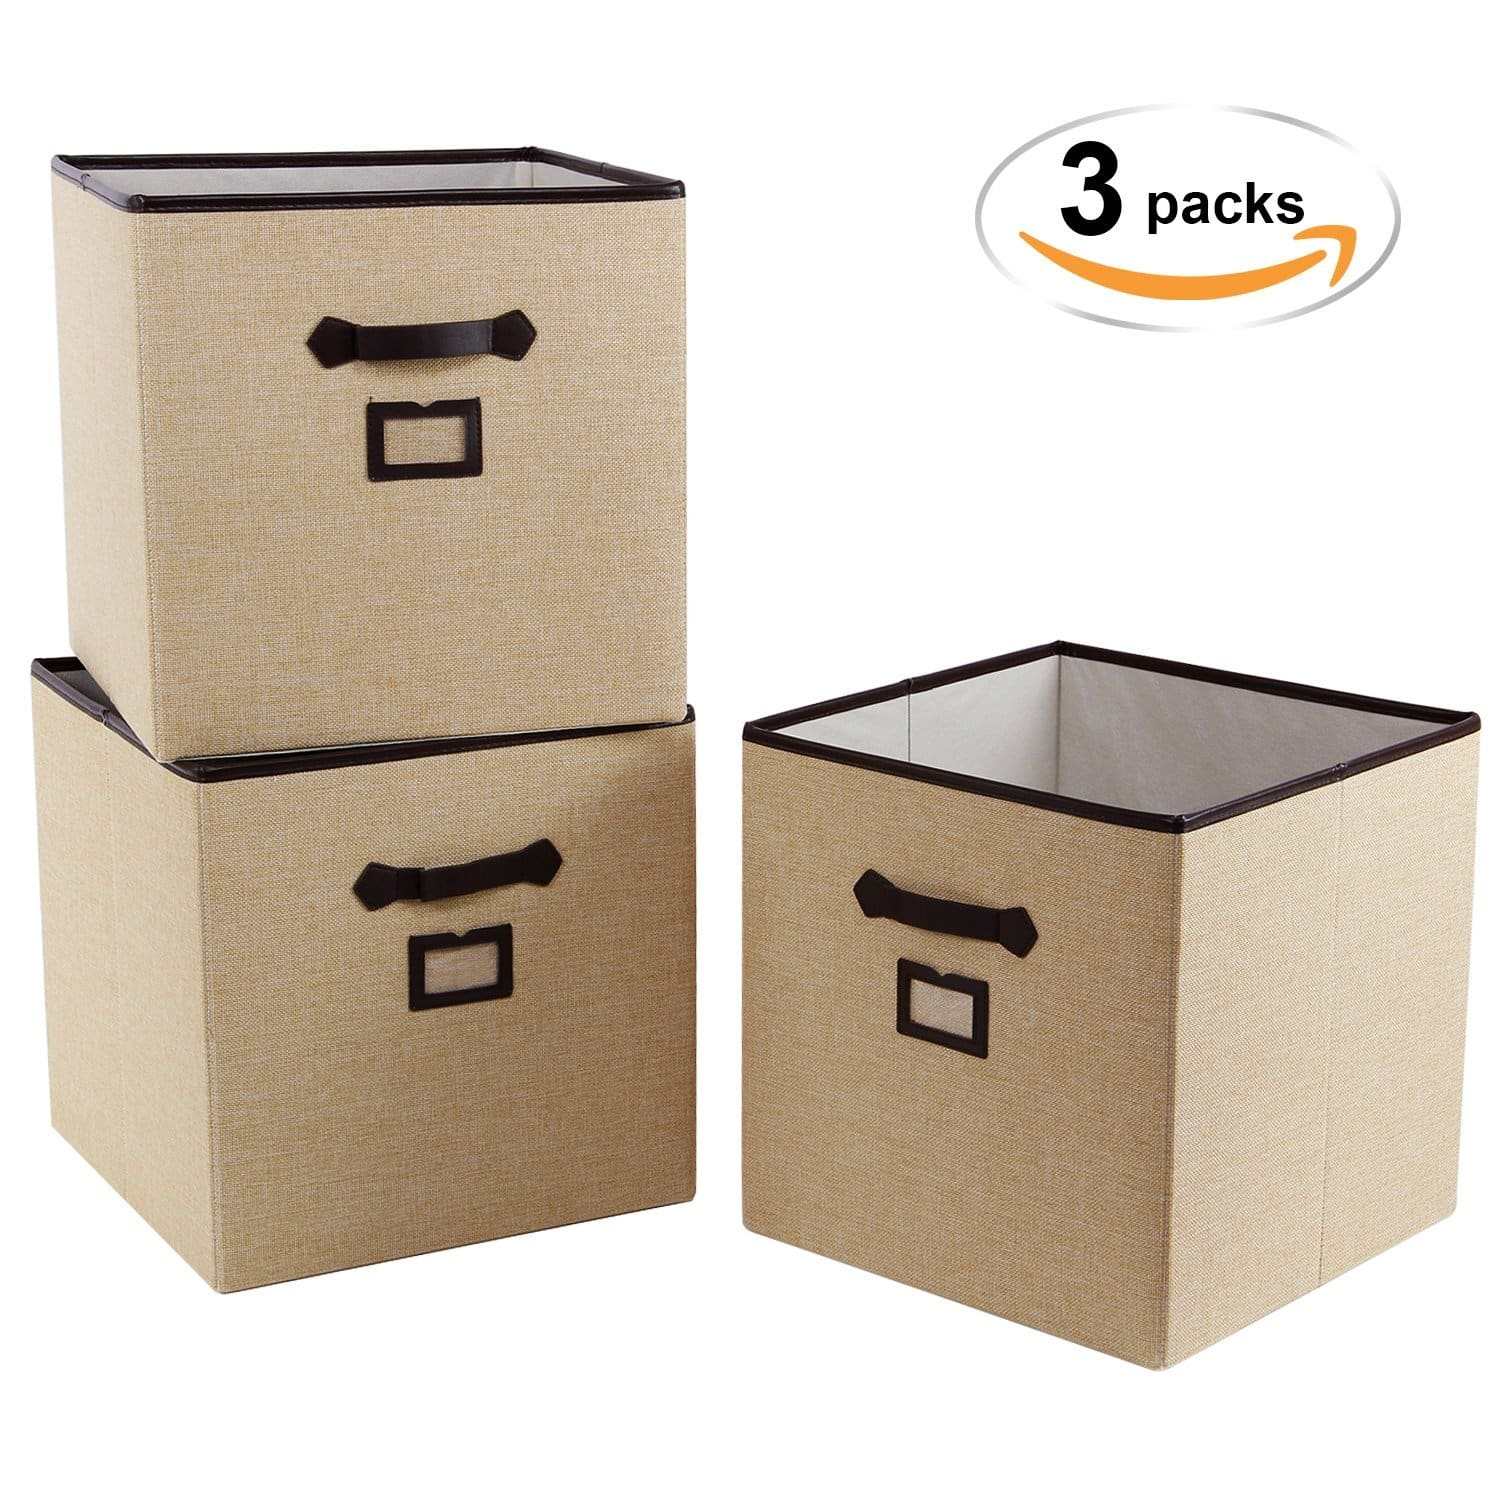 Polyester 13u201d Cube Storage Bins With Label Holder Foldable Storage Baskets  Containers For Shelves,